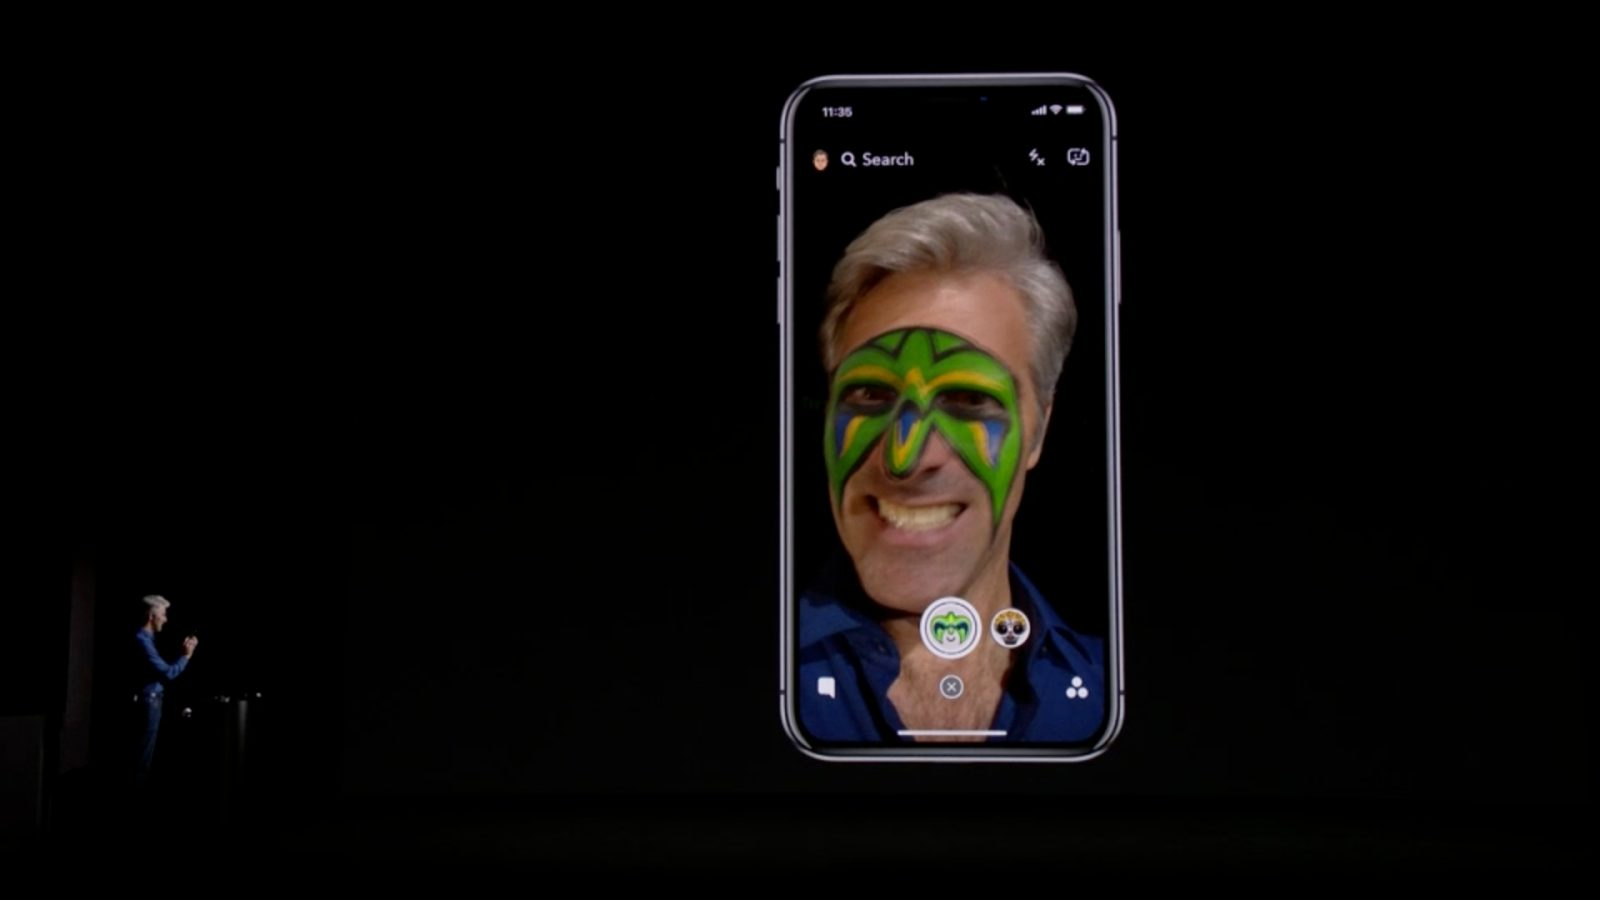 Apple explains how iPhone X facial recognition with Face ID